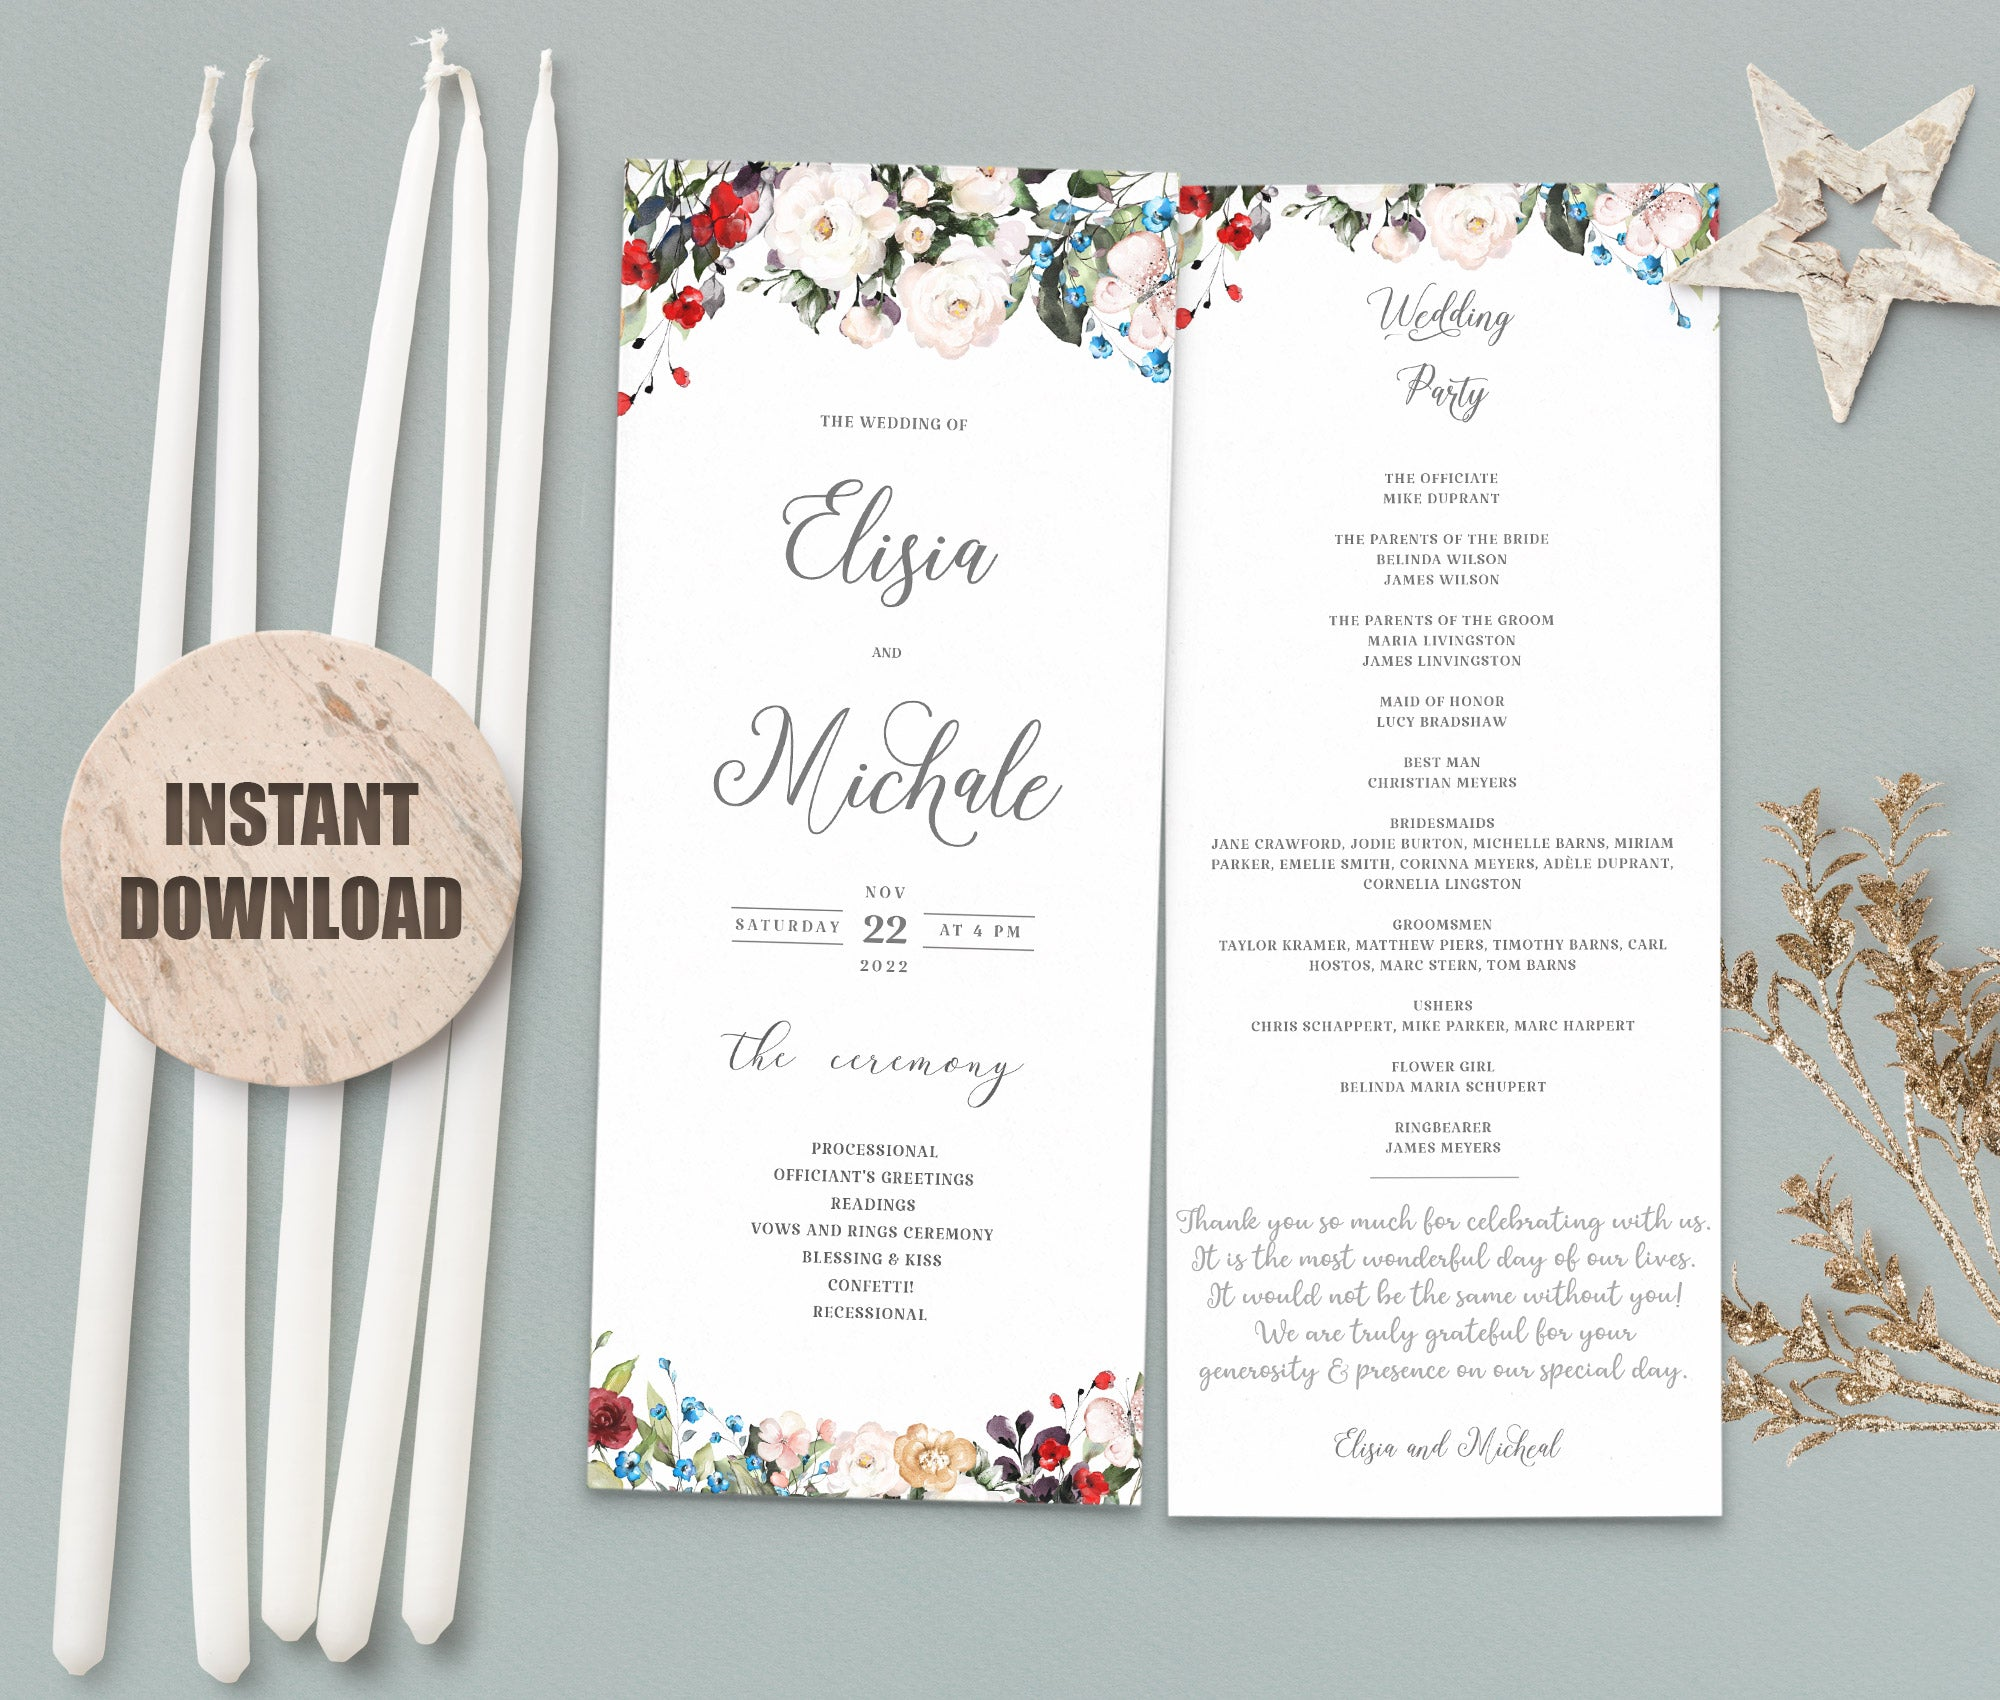 LOVAL Wedding Program set 4